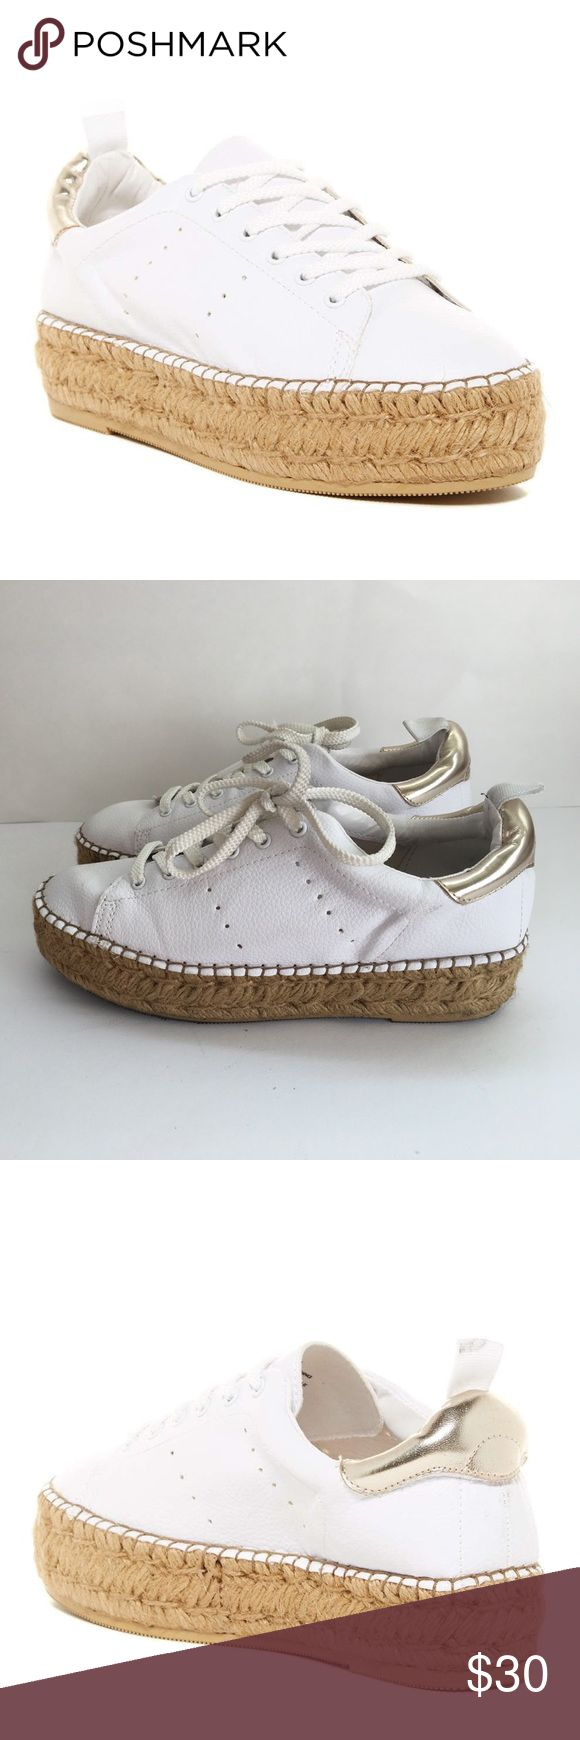 *Steve Madden * Wedge Sneaker 7 Beautiful Gold White Wedge Sneakers by Steve Madden. Us Size 7B .  Worn in Great Condition No Stains on the white or the wedge. There are some Stains on the sole please see picture ( I guess from socks) Steve Madden Shoes Wedges